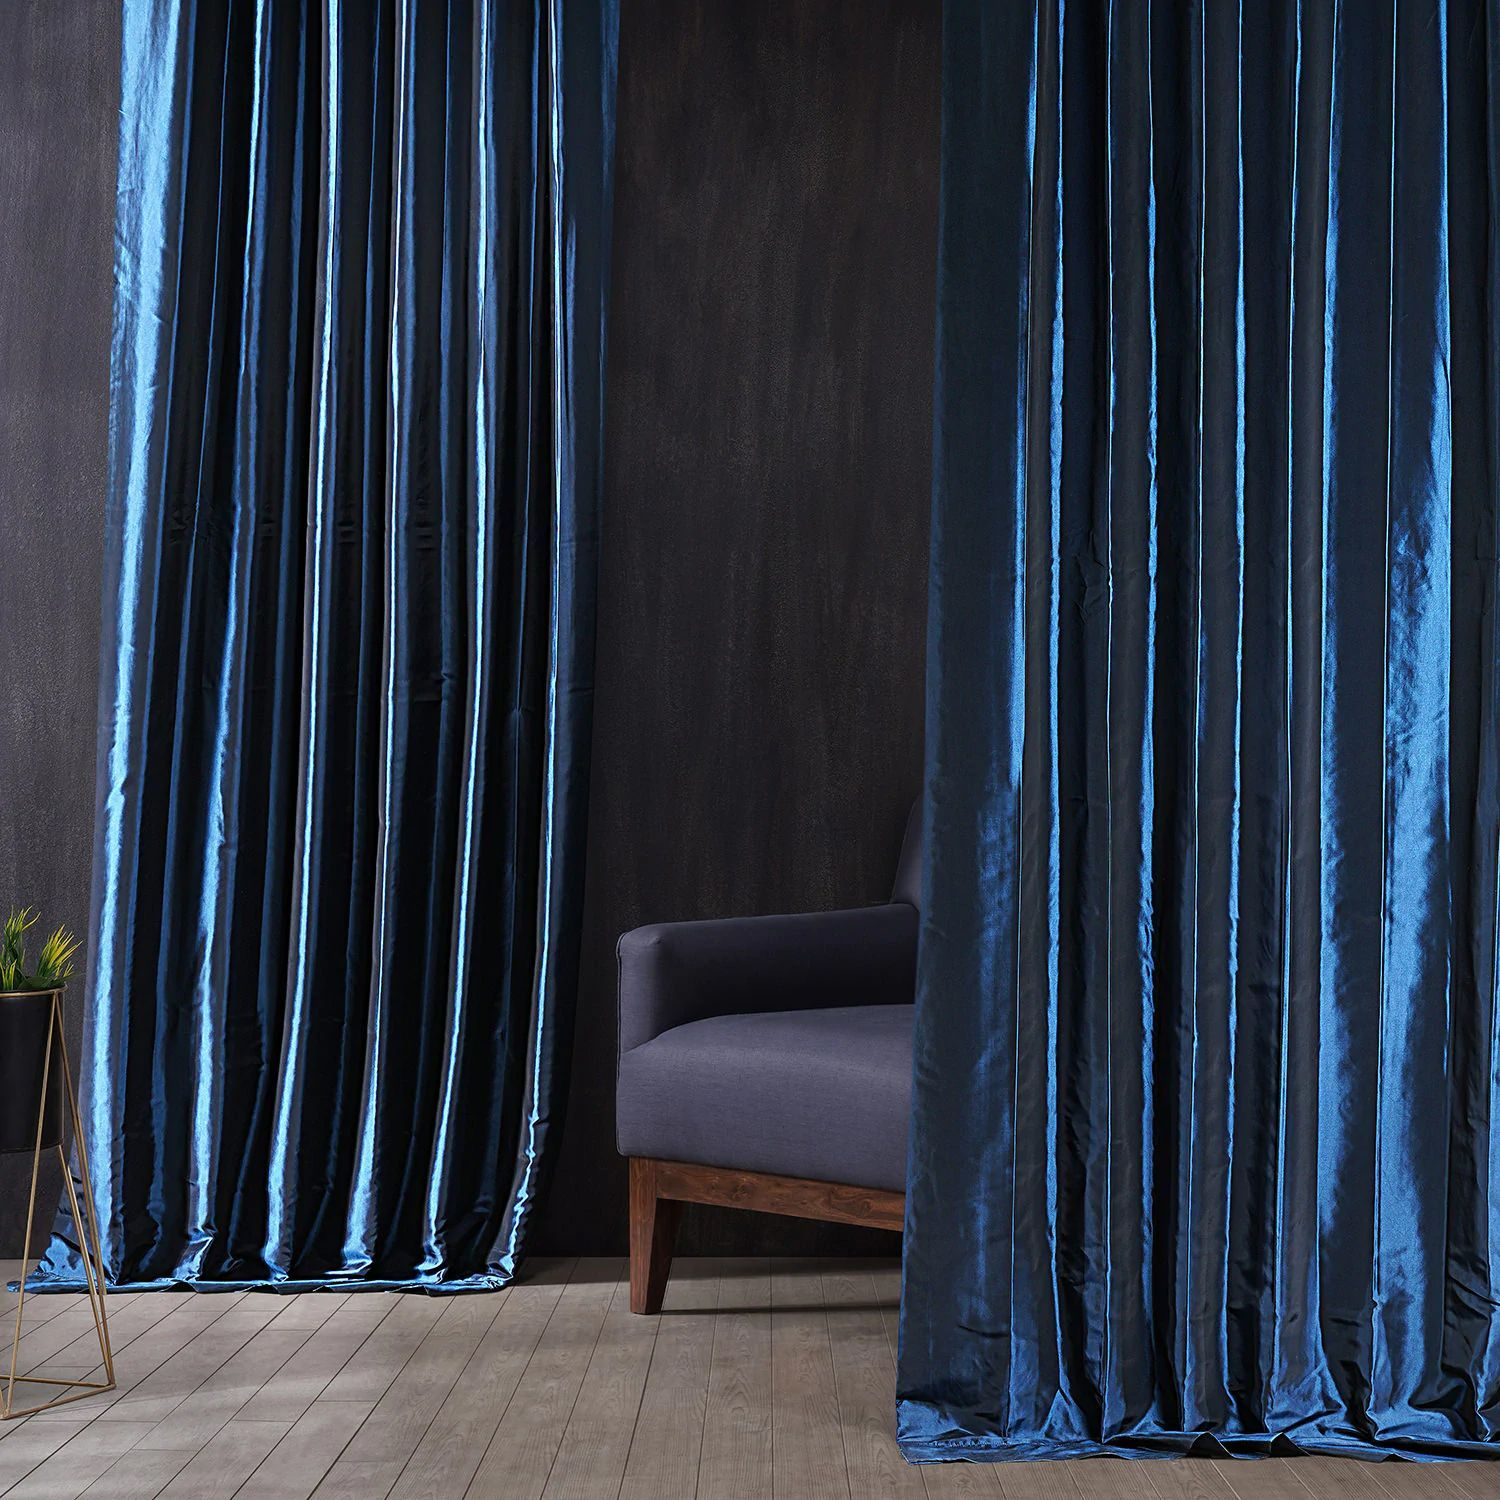 Bring Hotel Quality Blackout Curtains Home With Style Our Ultra Smooth Faux Silk Taffeta Curtains Bring A Modern In 2021 Half Price Drapes Curtains Blackout Curtains